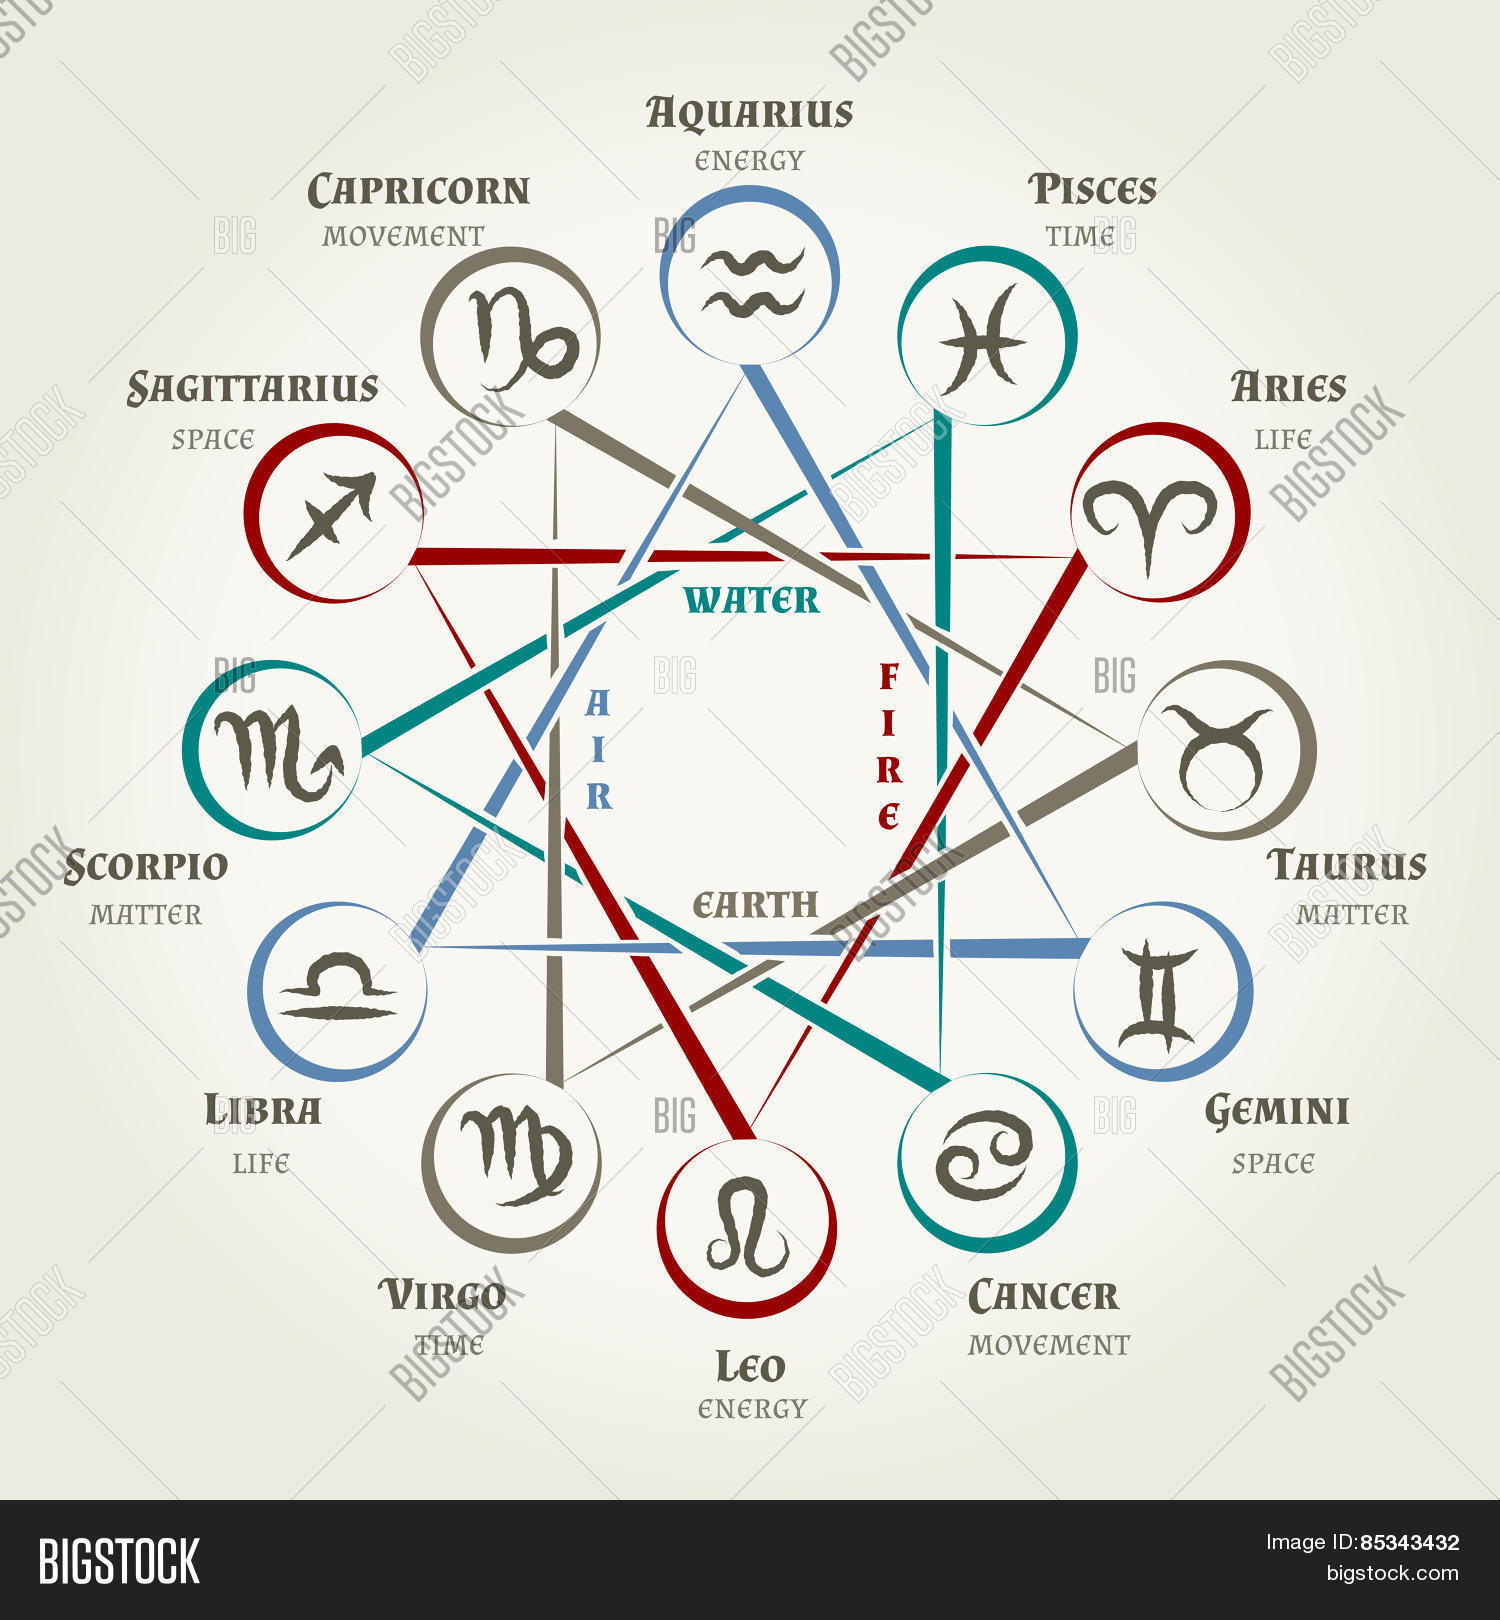 Astrology circle zodiac signs vector photo bigstock astrology circle with zodiac signs planets symbols and elements biocorpaavc